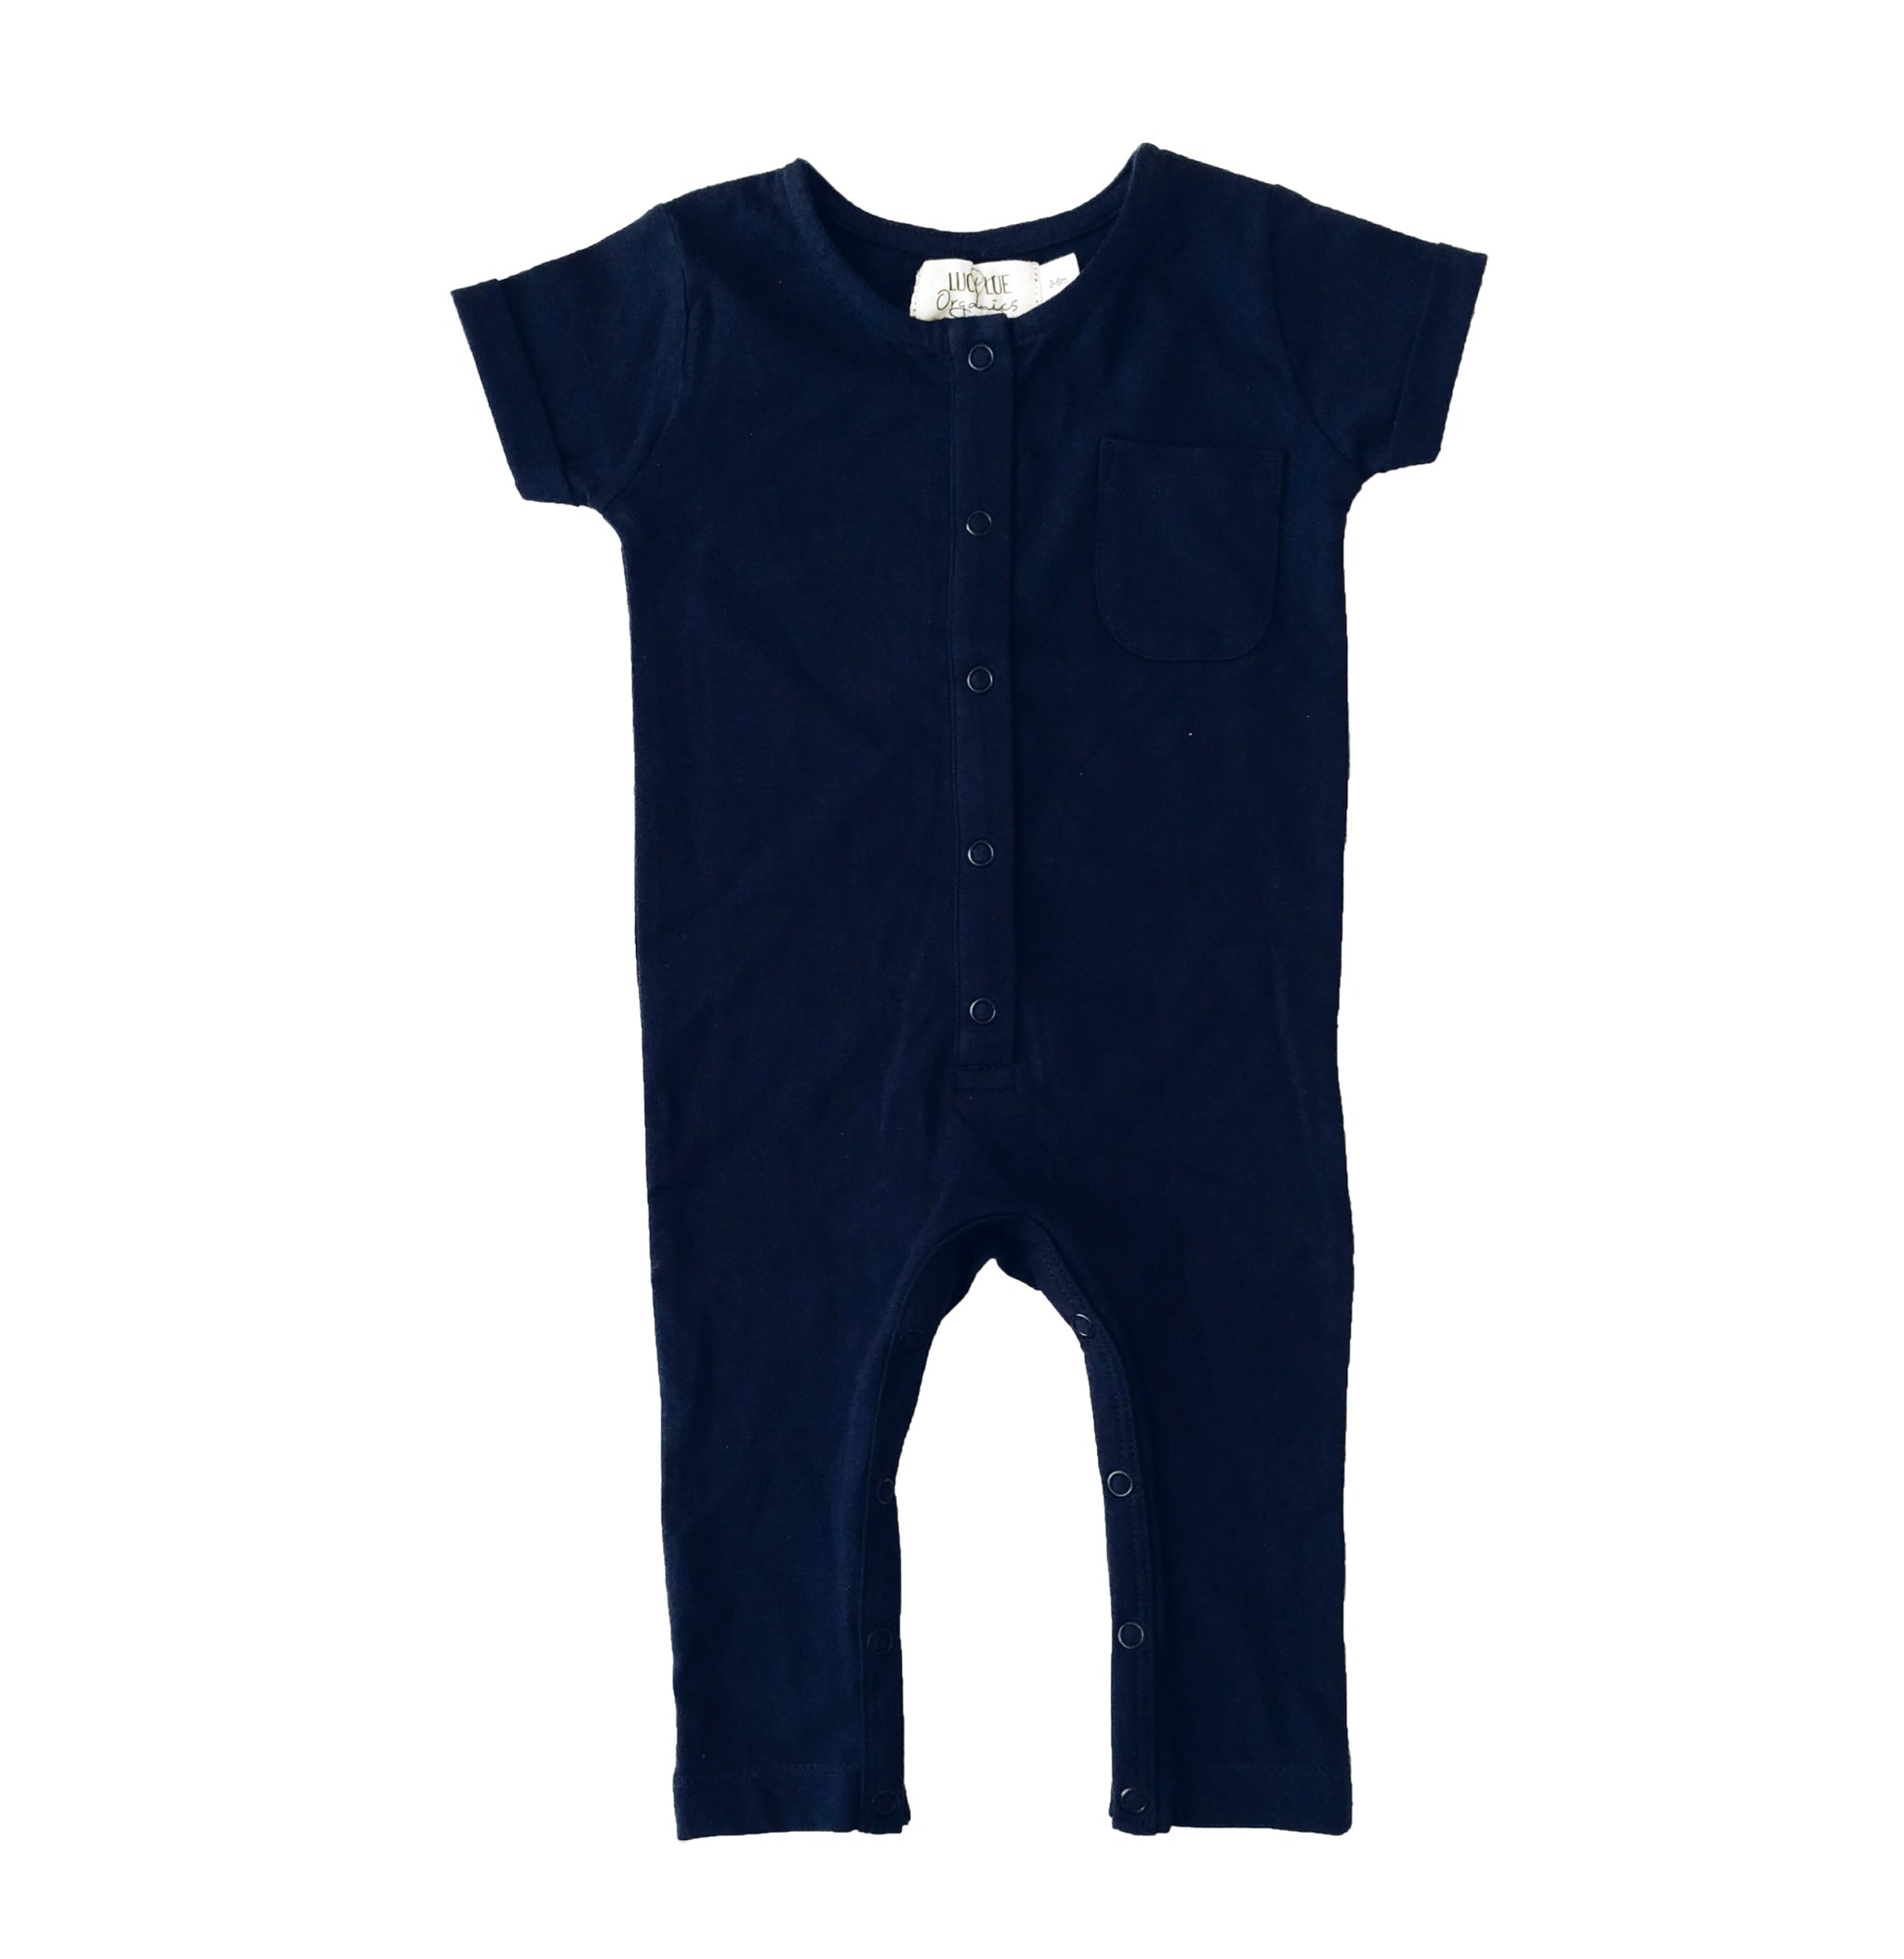 Baby clothes. Organic baby clothes. Super soft short sleeve navy blue organic cotton baby romper one-piece with snaps down the chest and legs. Made by Lucy Lue Organics. Baby must haves. Baby Christmas gift ideas. Spring baby styles.